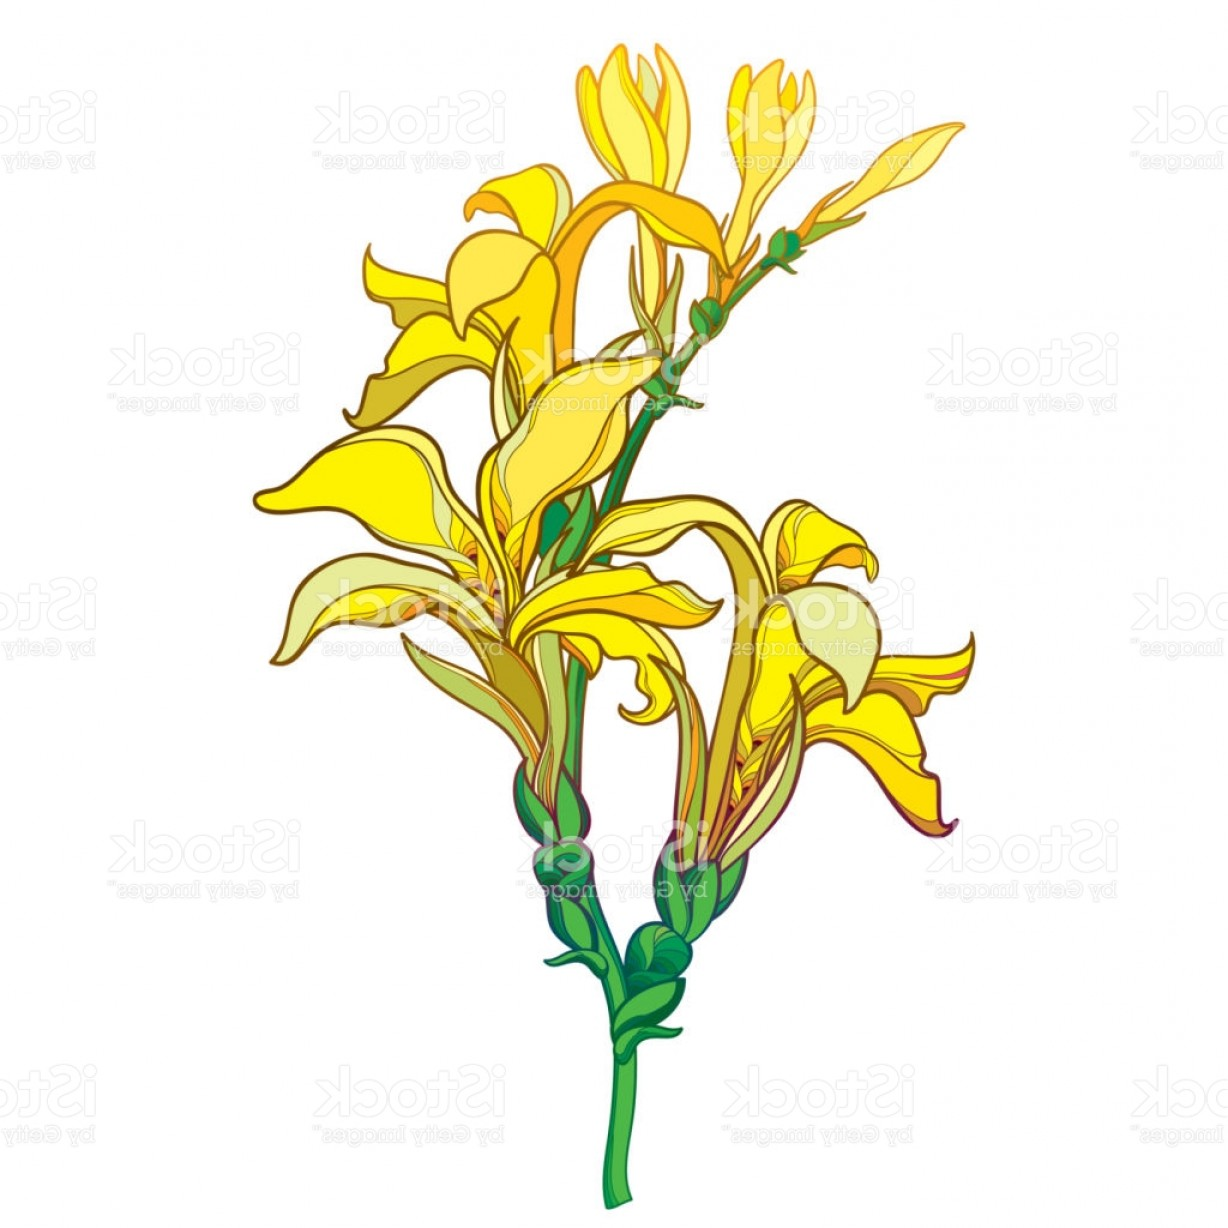 Bud Vector: Vector Branch With Outline Canna Lily Or Canna Flower Bunch And Bud In Yellow Gm